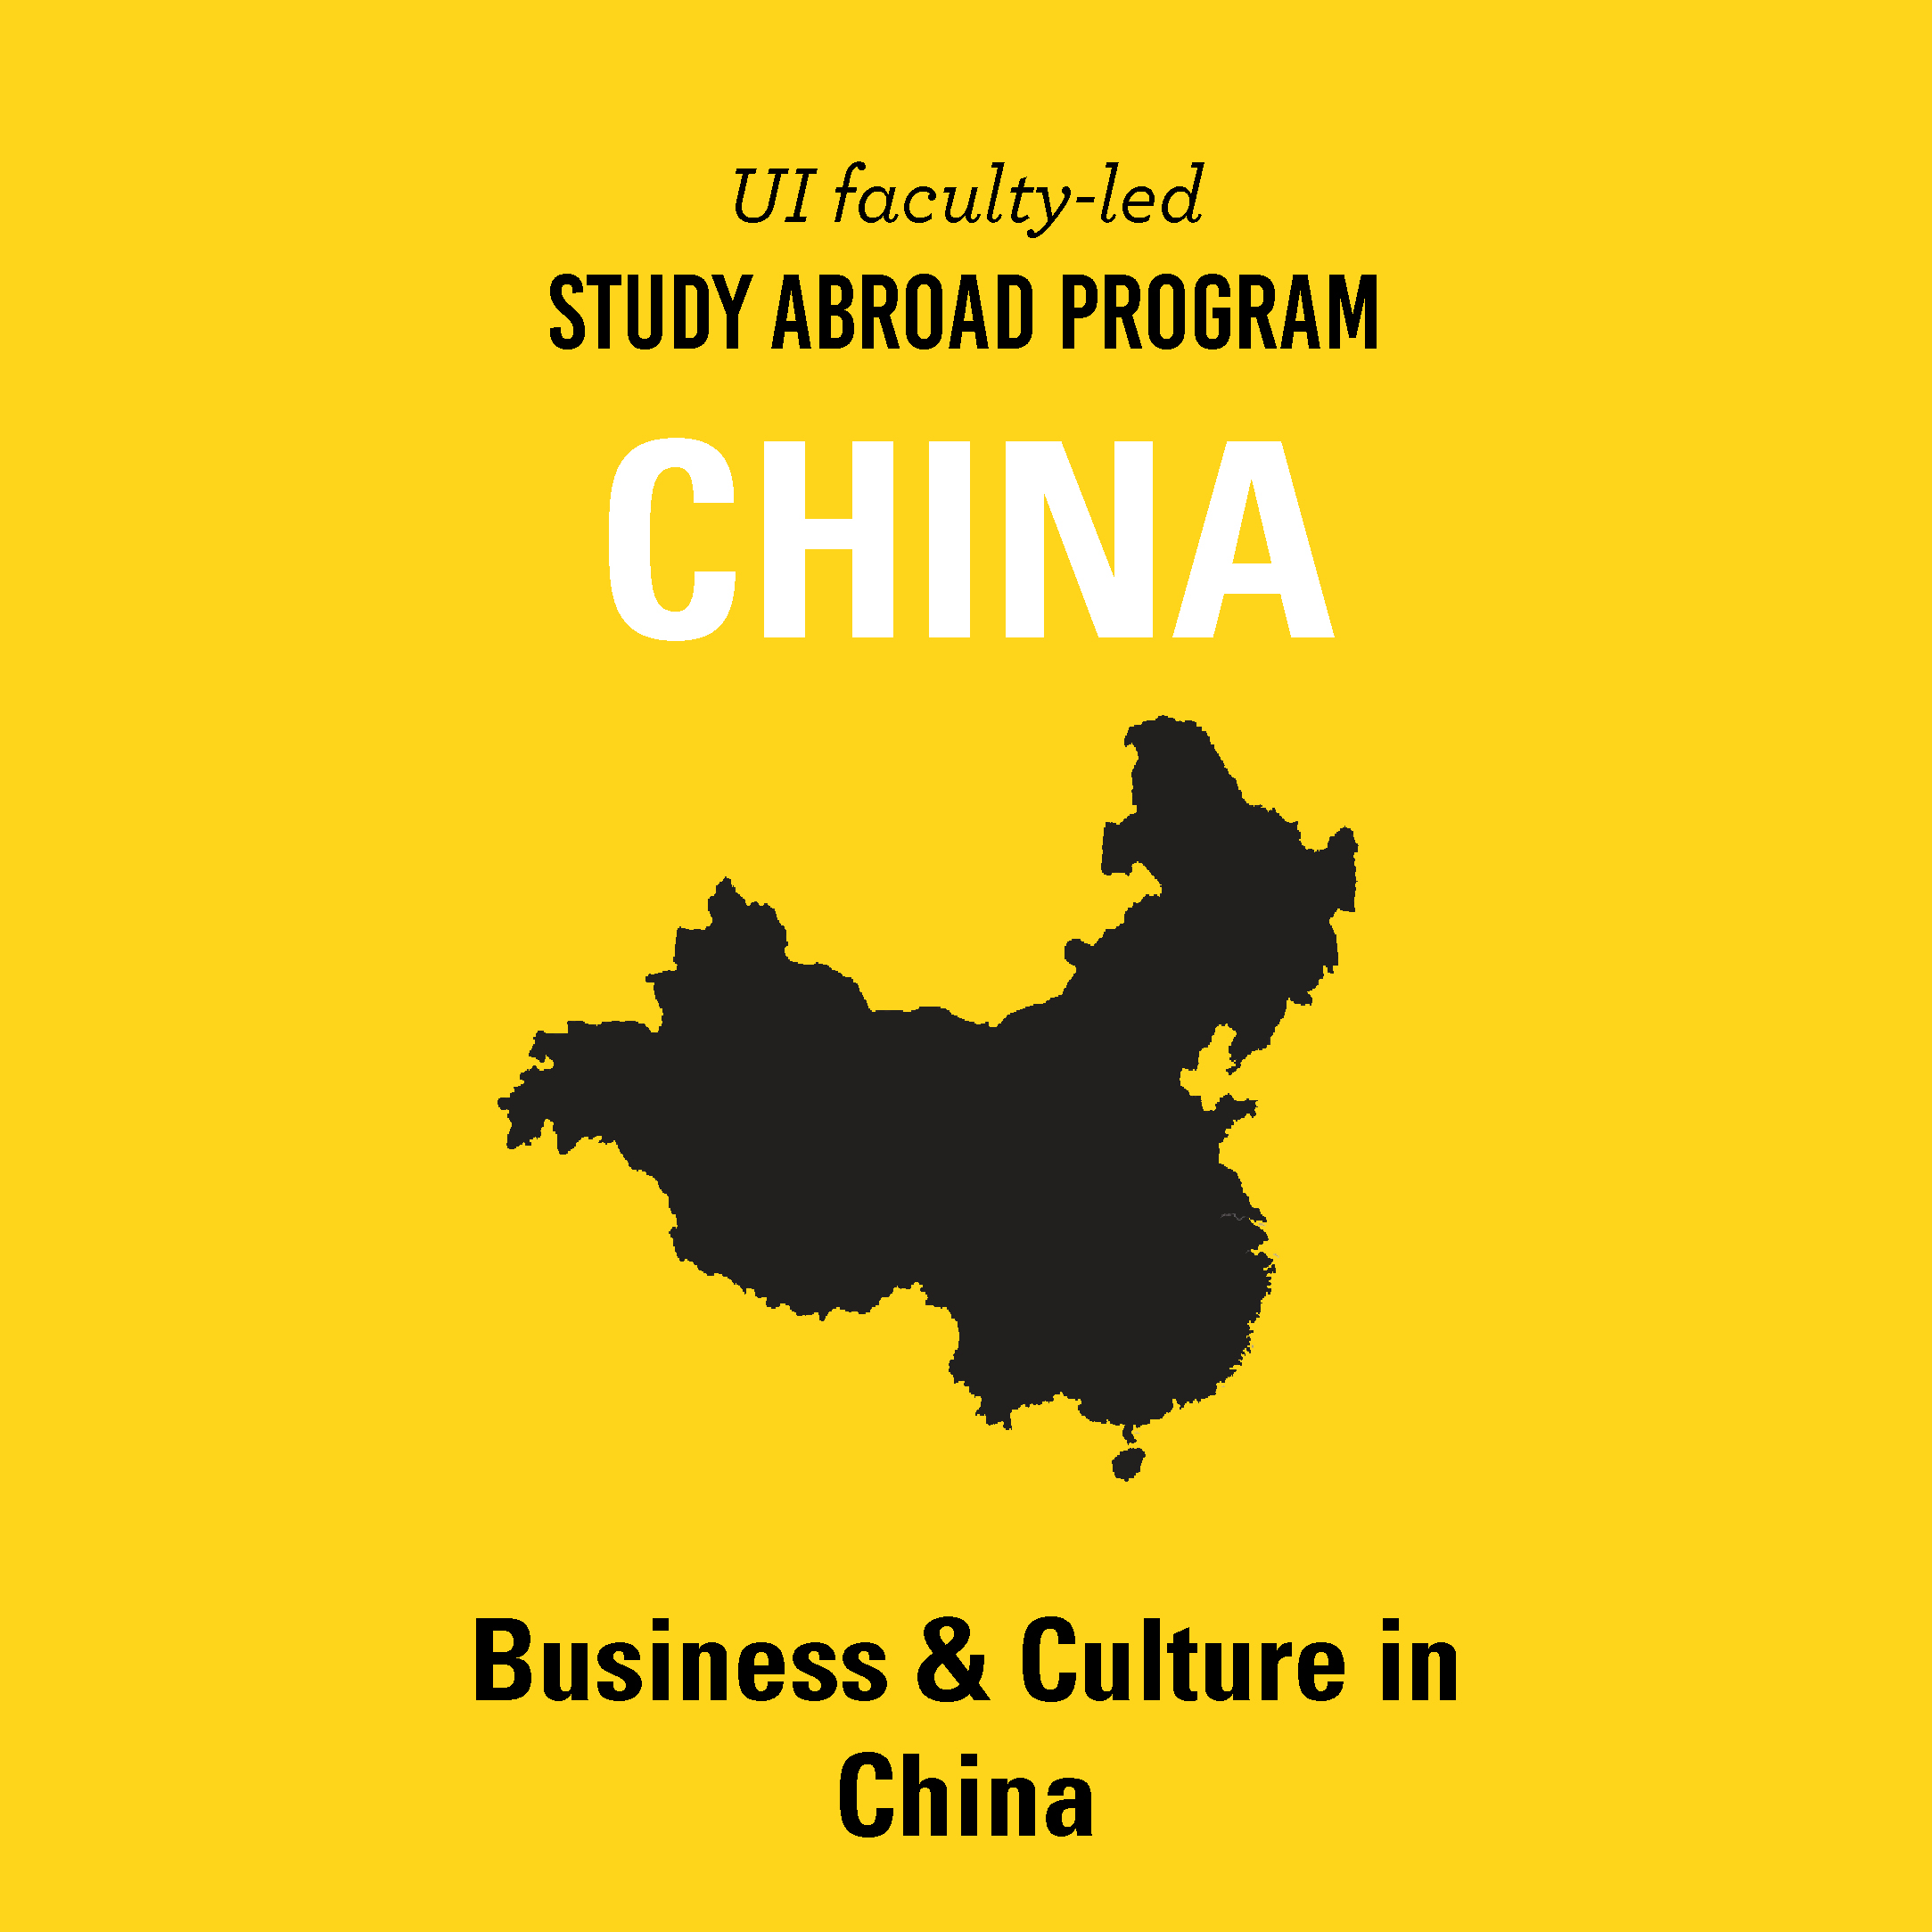 Study Abroad Information Session on December 6 and February 14 about the Business and Culture in China program